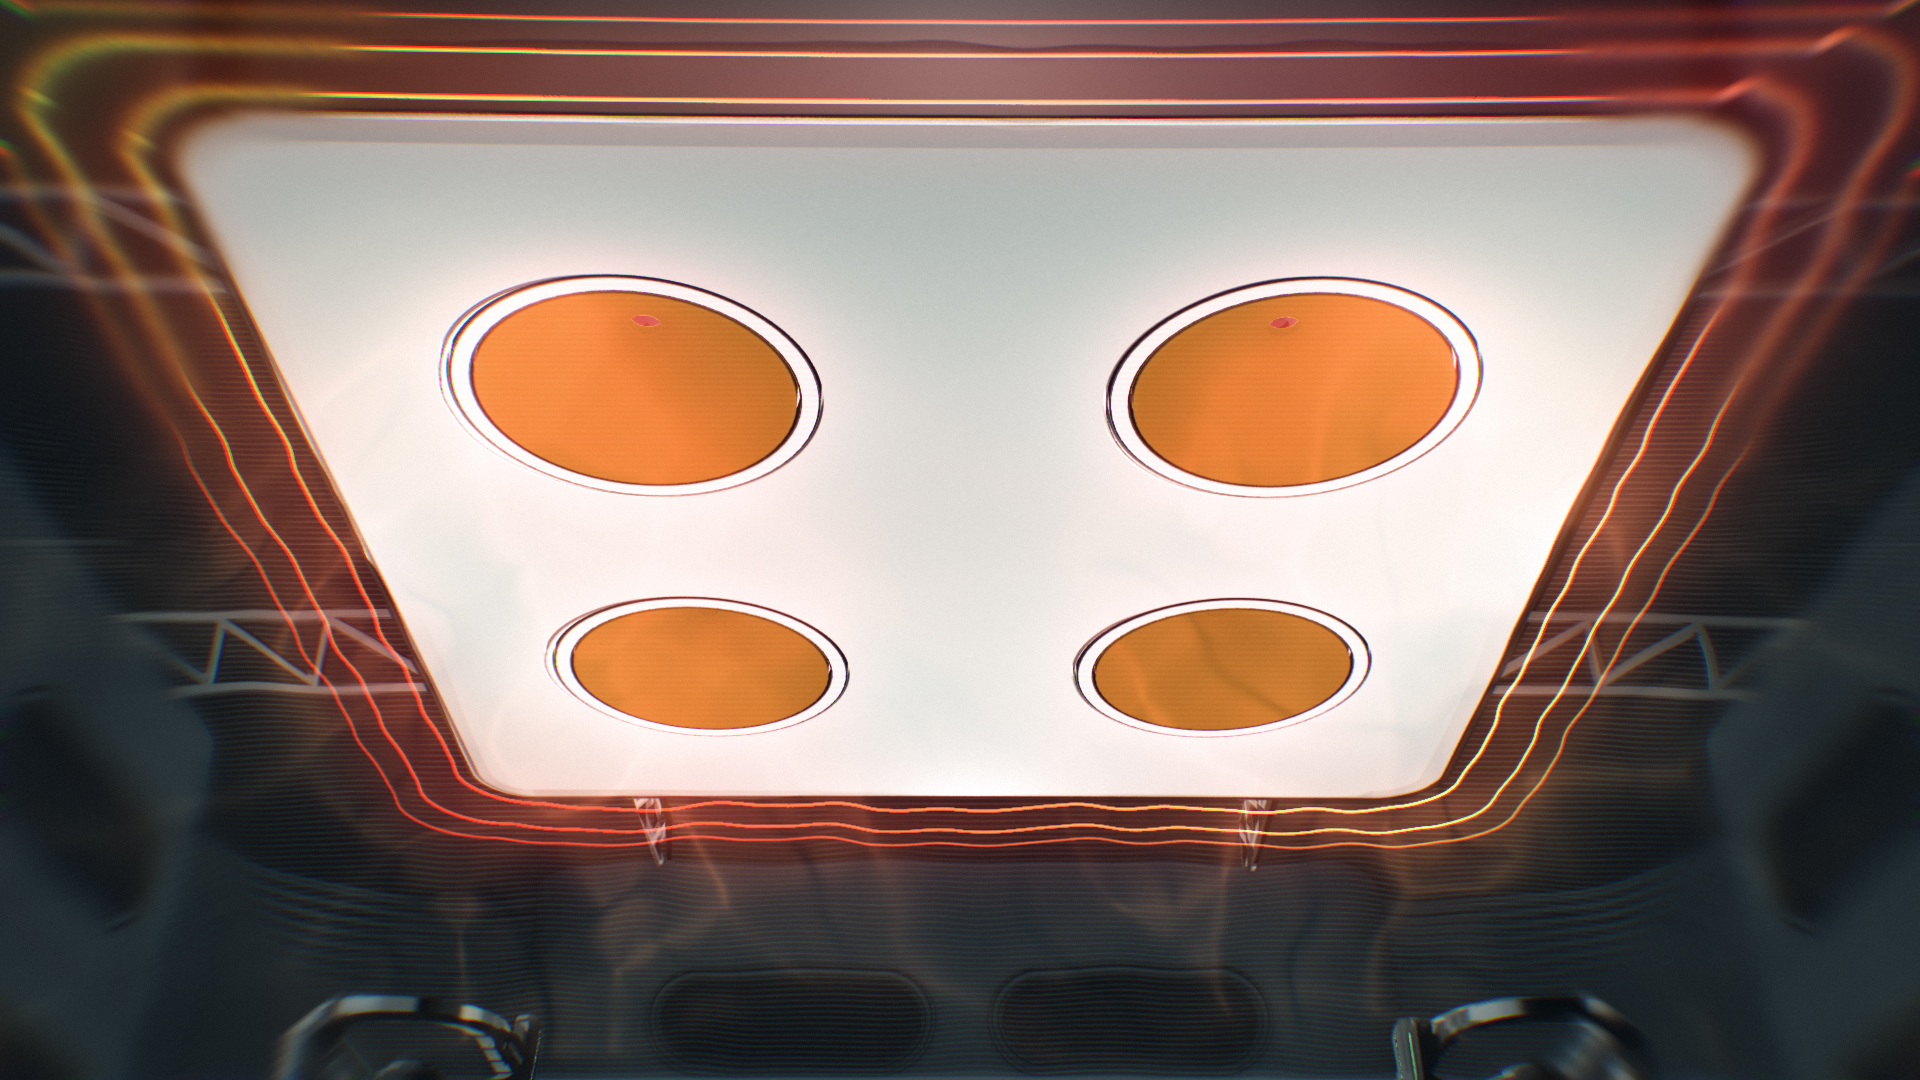 Hyperdeck roof with 4 heat vents, red neon shapes tracing the edges